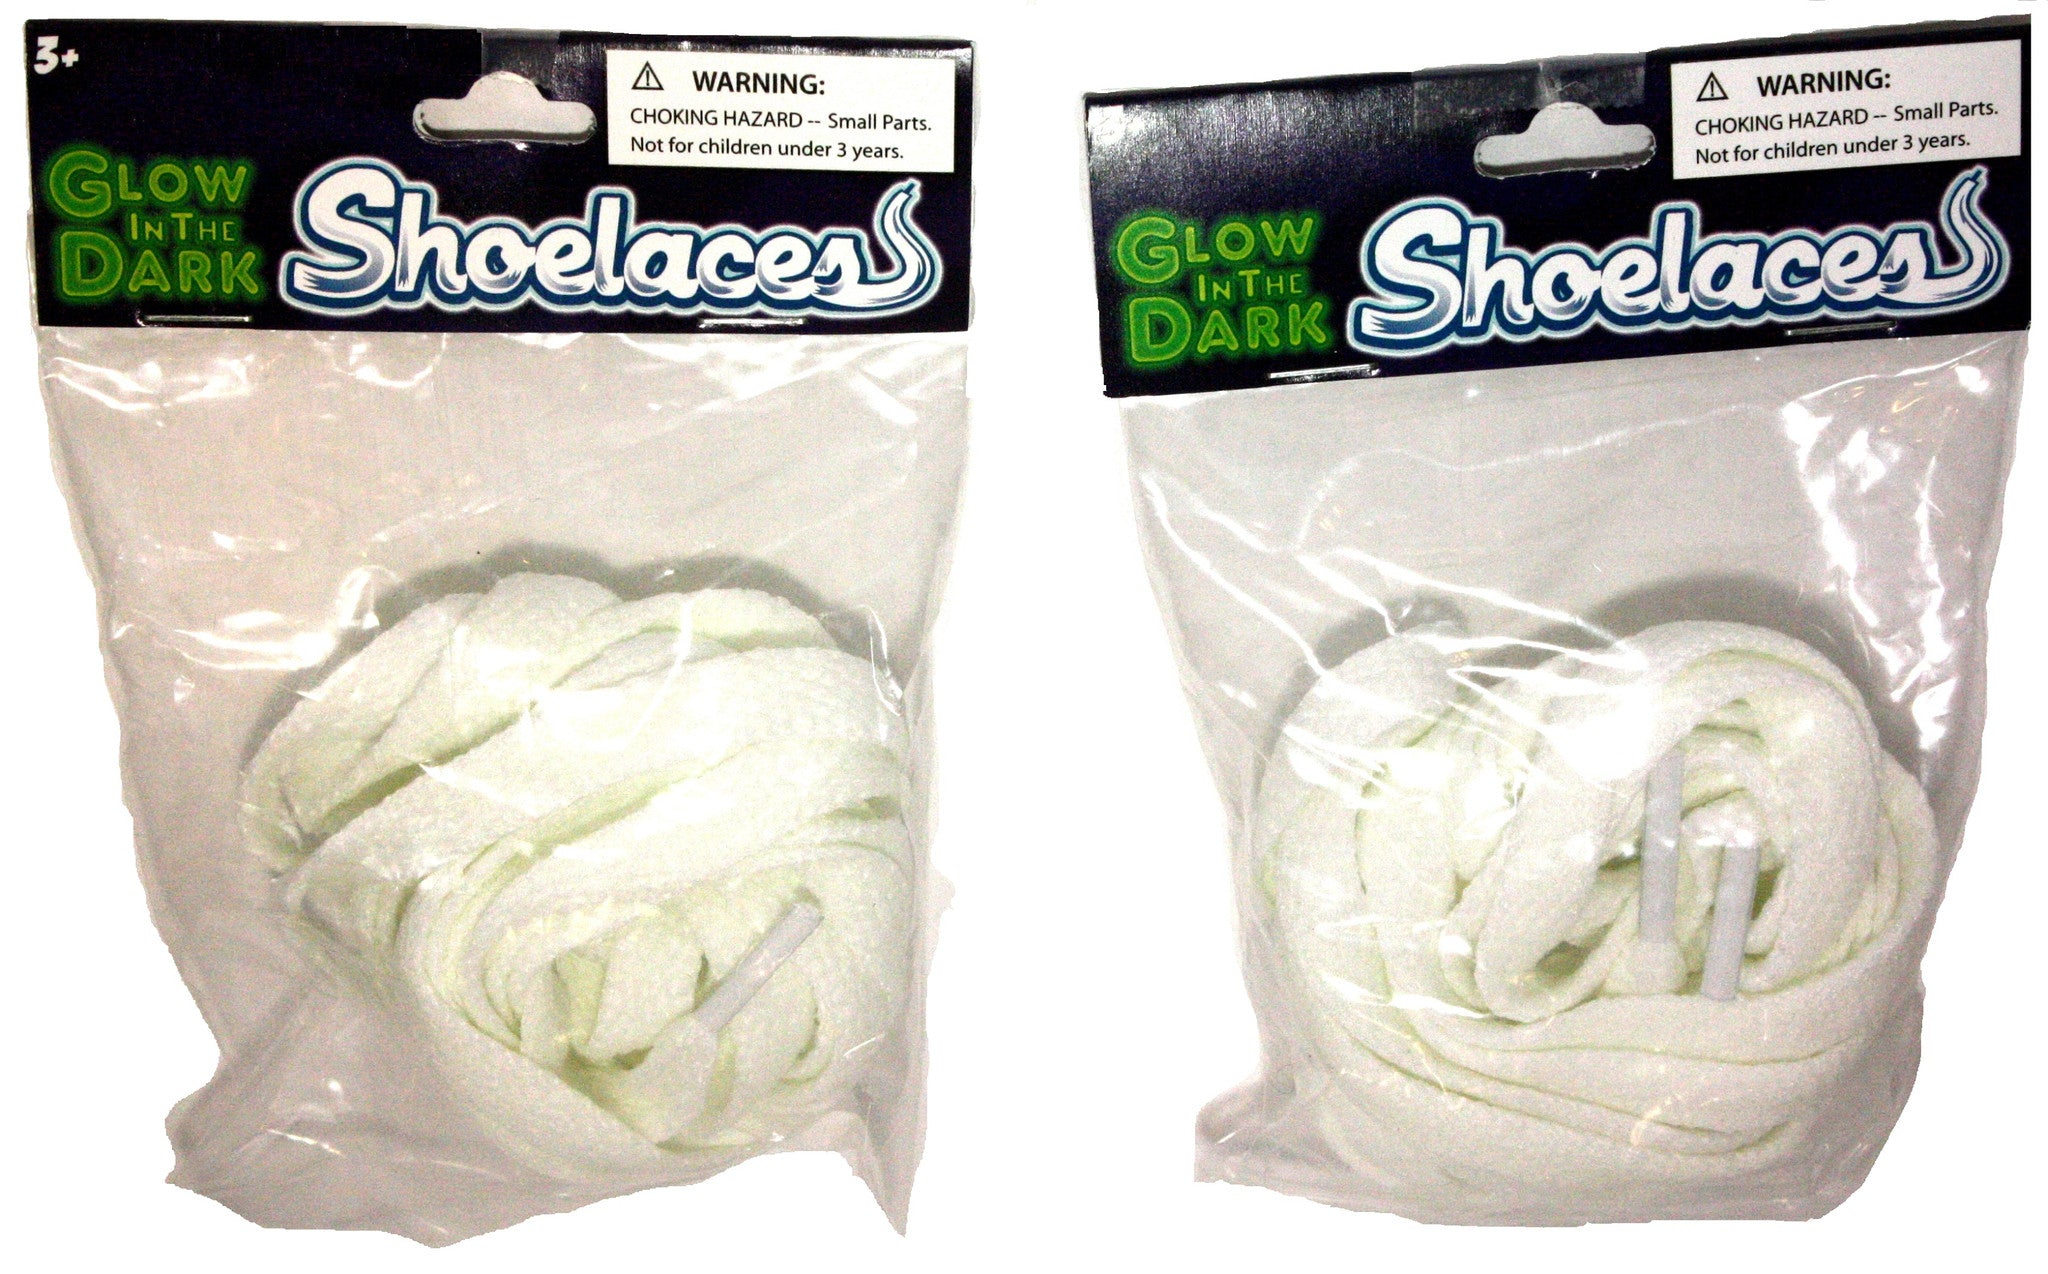 40 Inch Glow in the Dark Shoelaces - 2 Pairs - Off The Wall Toys and Gifts